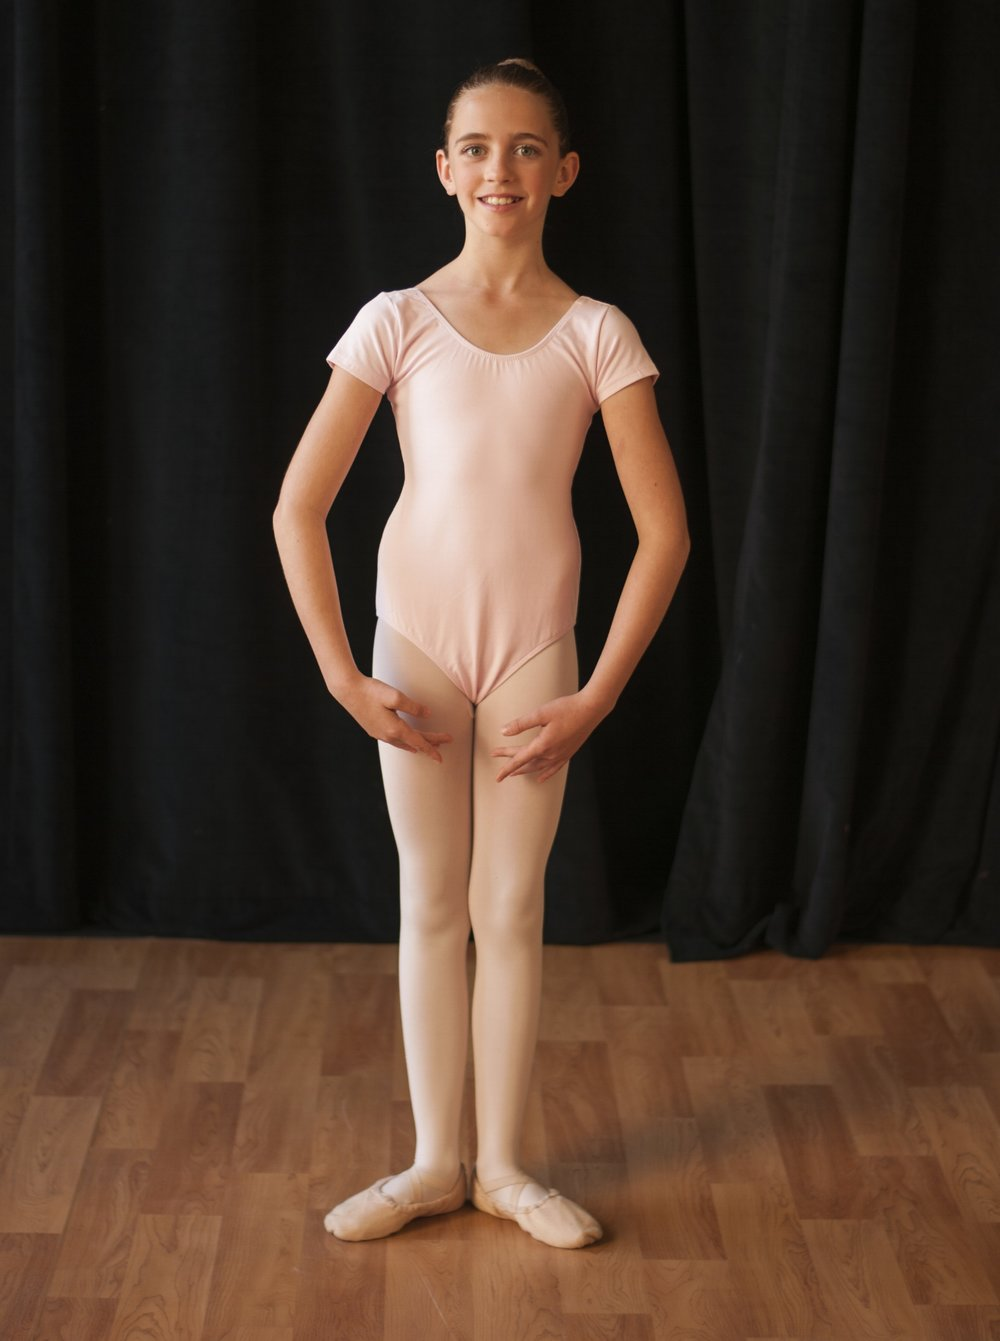 Kinder Movement I & II -  Light pink short sleeve leotardPink footed or convertible tights (no specific brand required)Pink ballet shoesHair in a bunSkirt, sweater and leg warmers are optional but at the discretion of the teacher